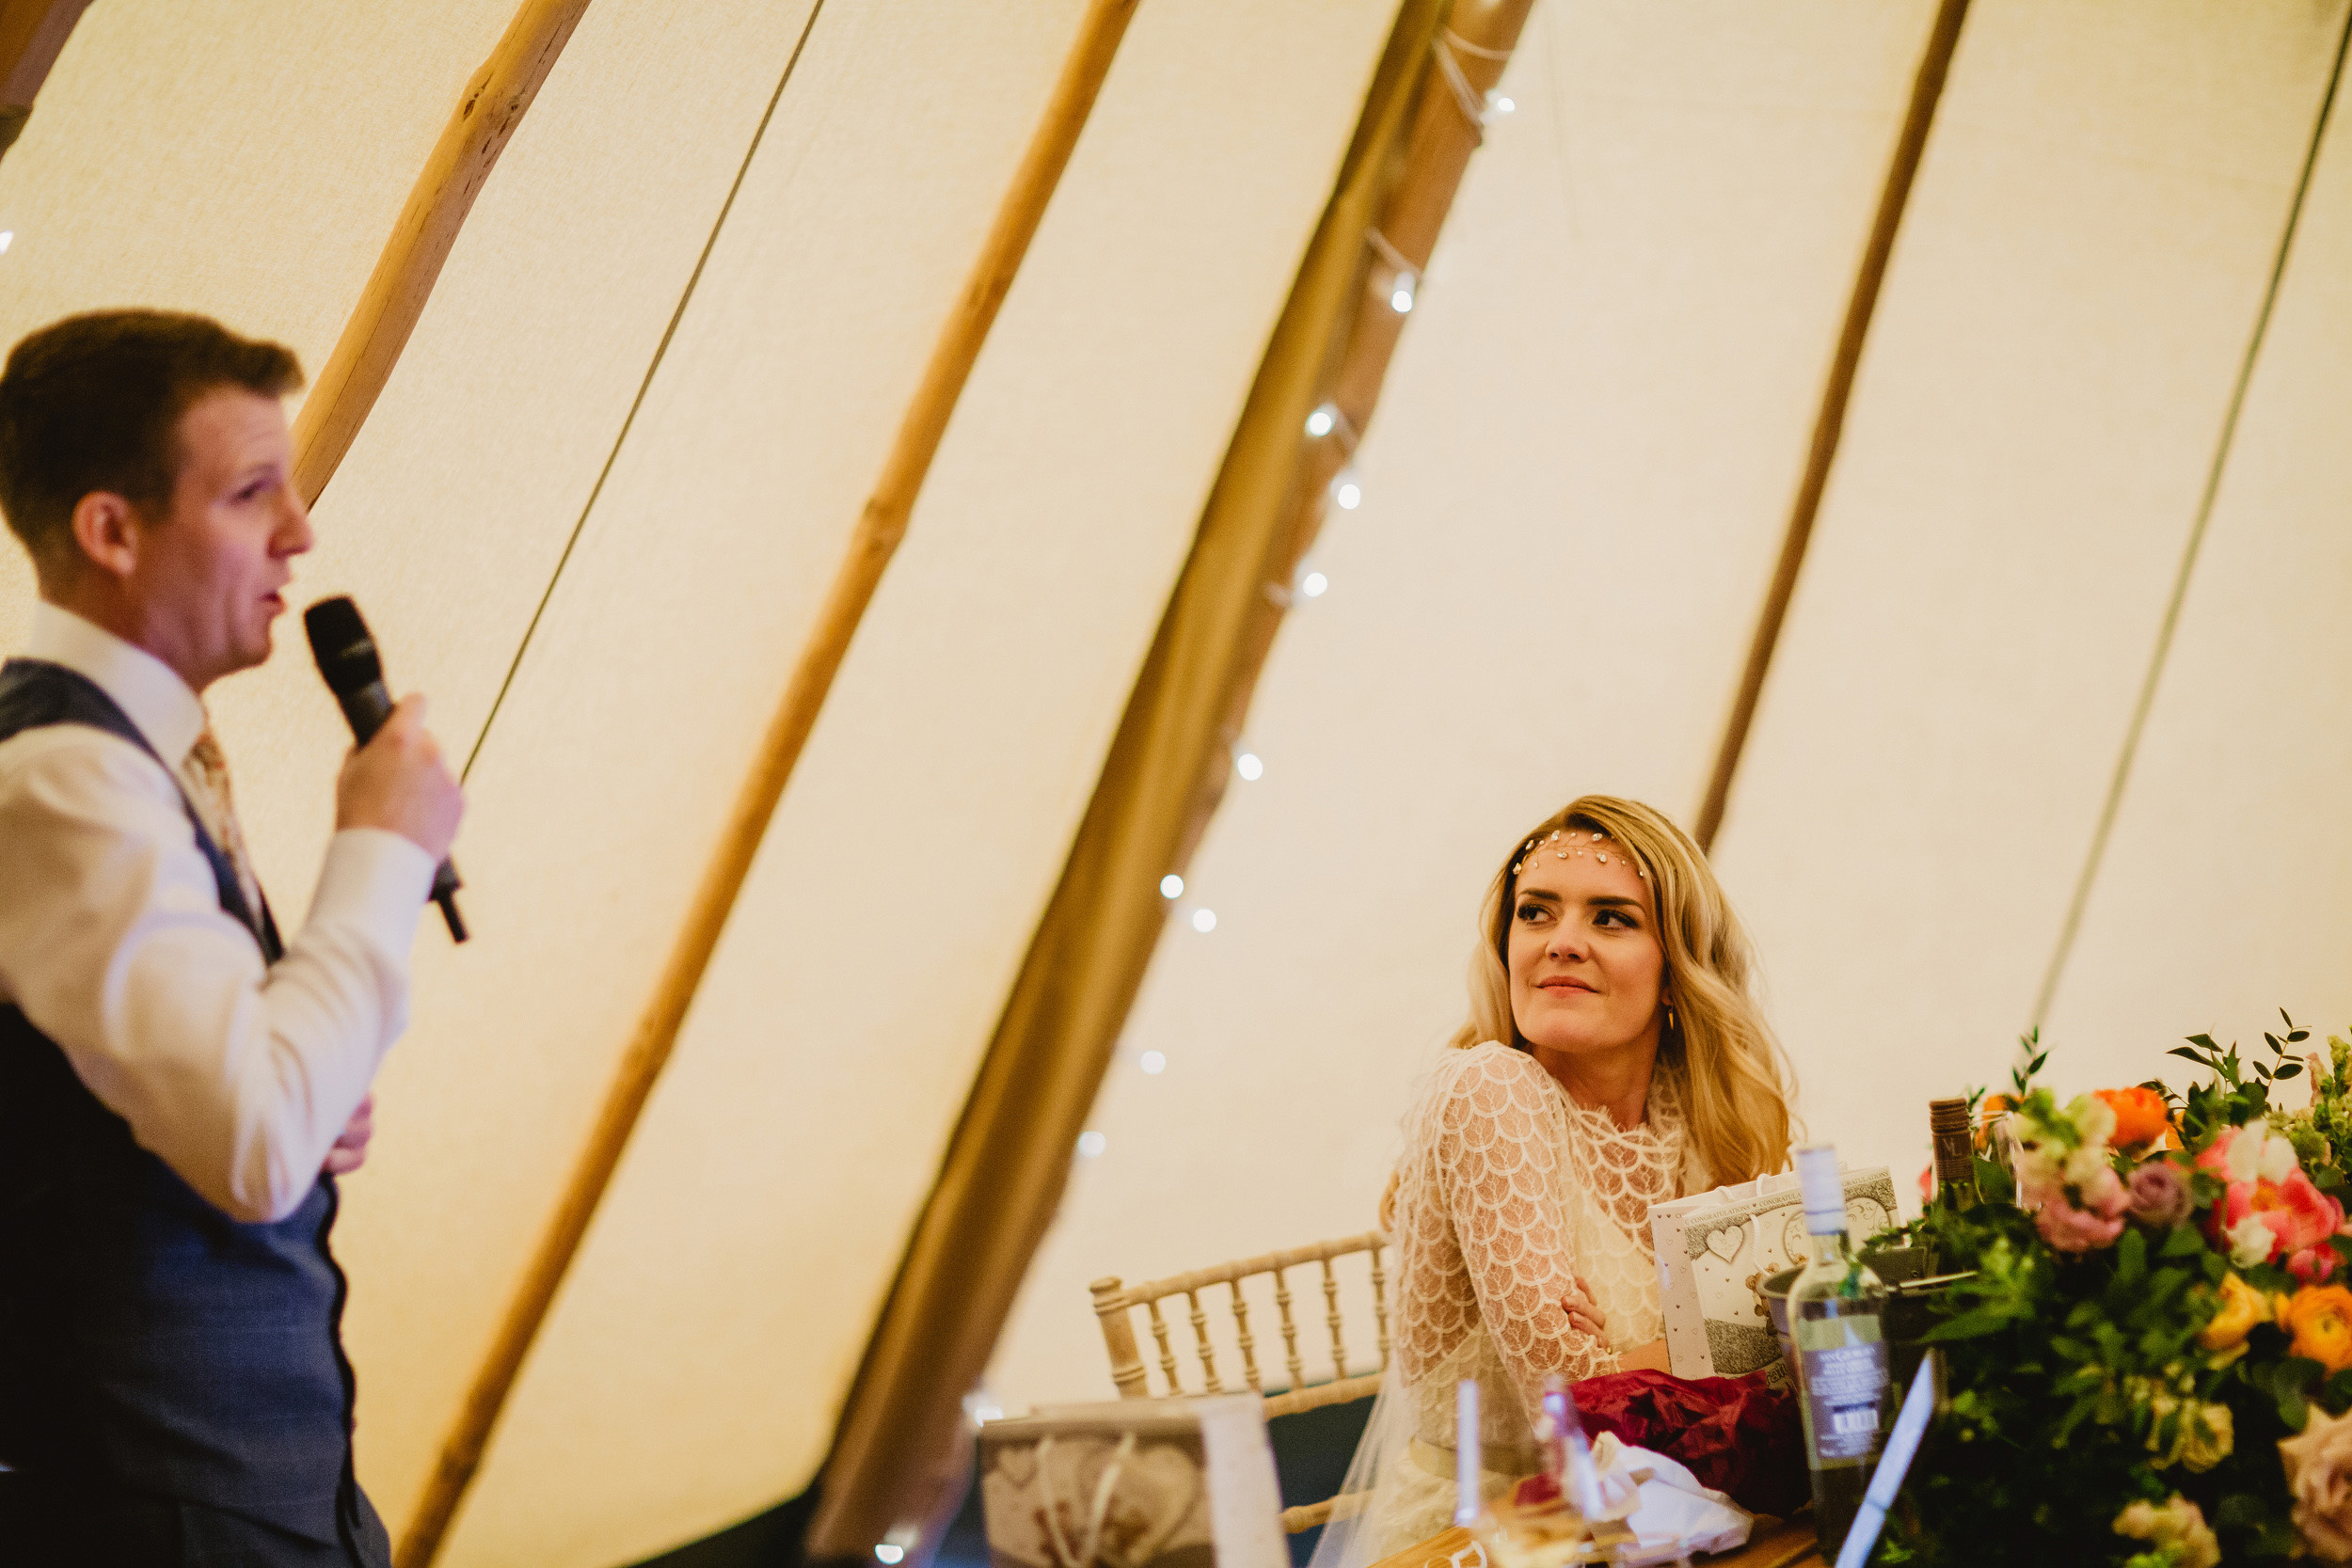 Gemma-Bohemian-Outdoor-Tipi-Wedding-Laid-Back-Relaxed-Family-Wedding-Kate-Beaumont-Astilbe-by-S6-Photography-Sheffield-33.jpg